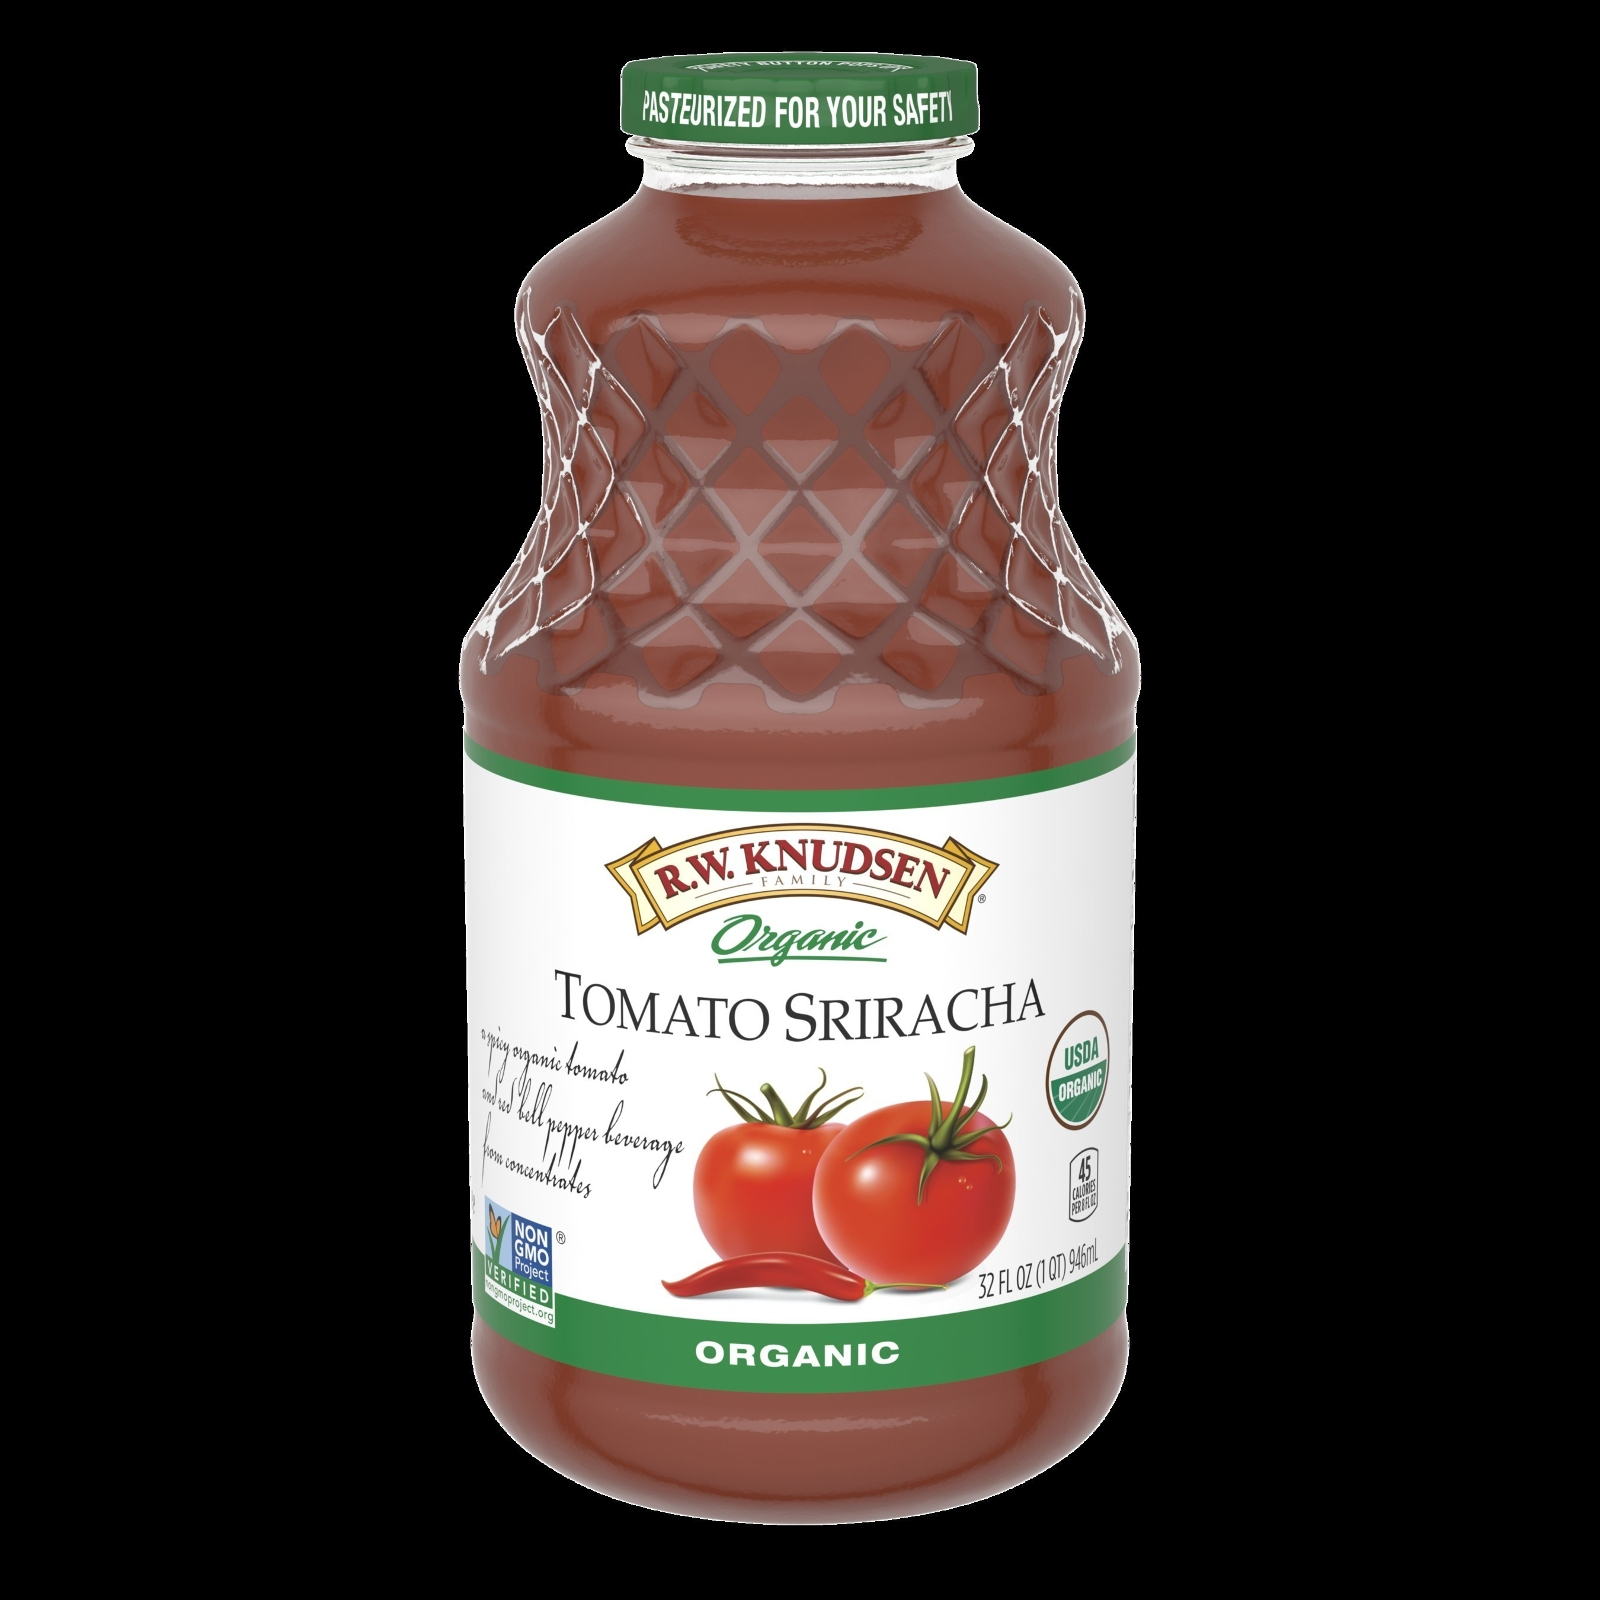 R.W. Knudsen Family Launches a Variety of Organic Vegetable Juice Blends